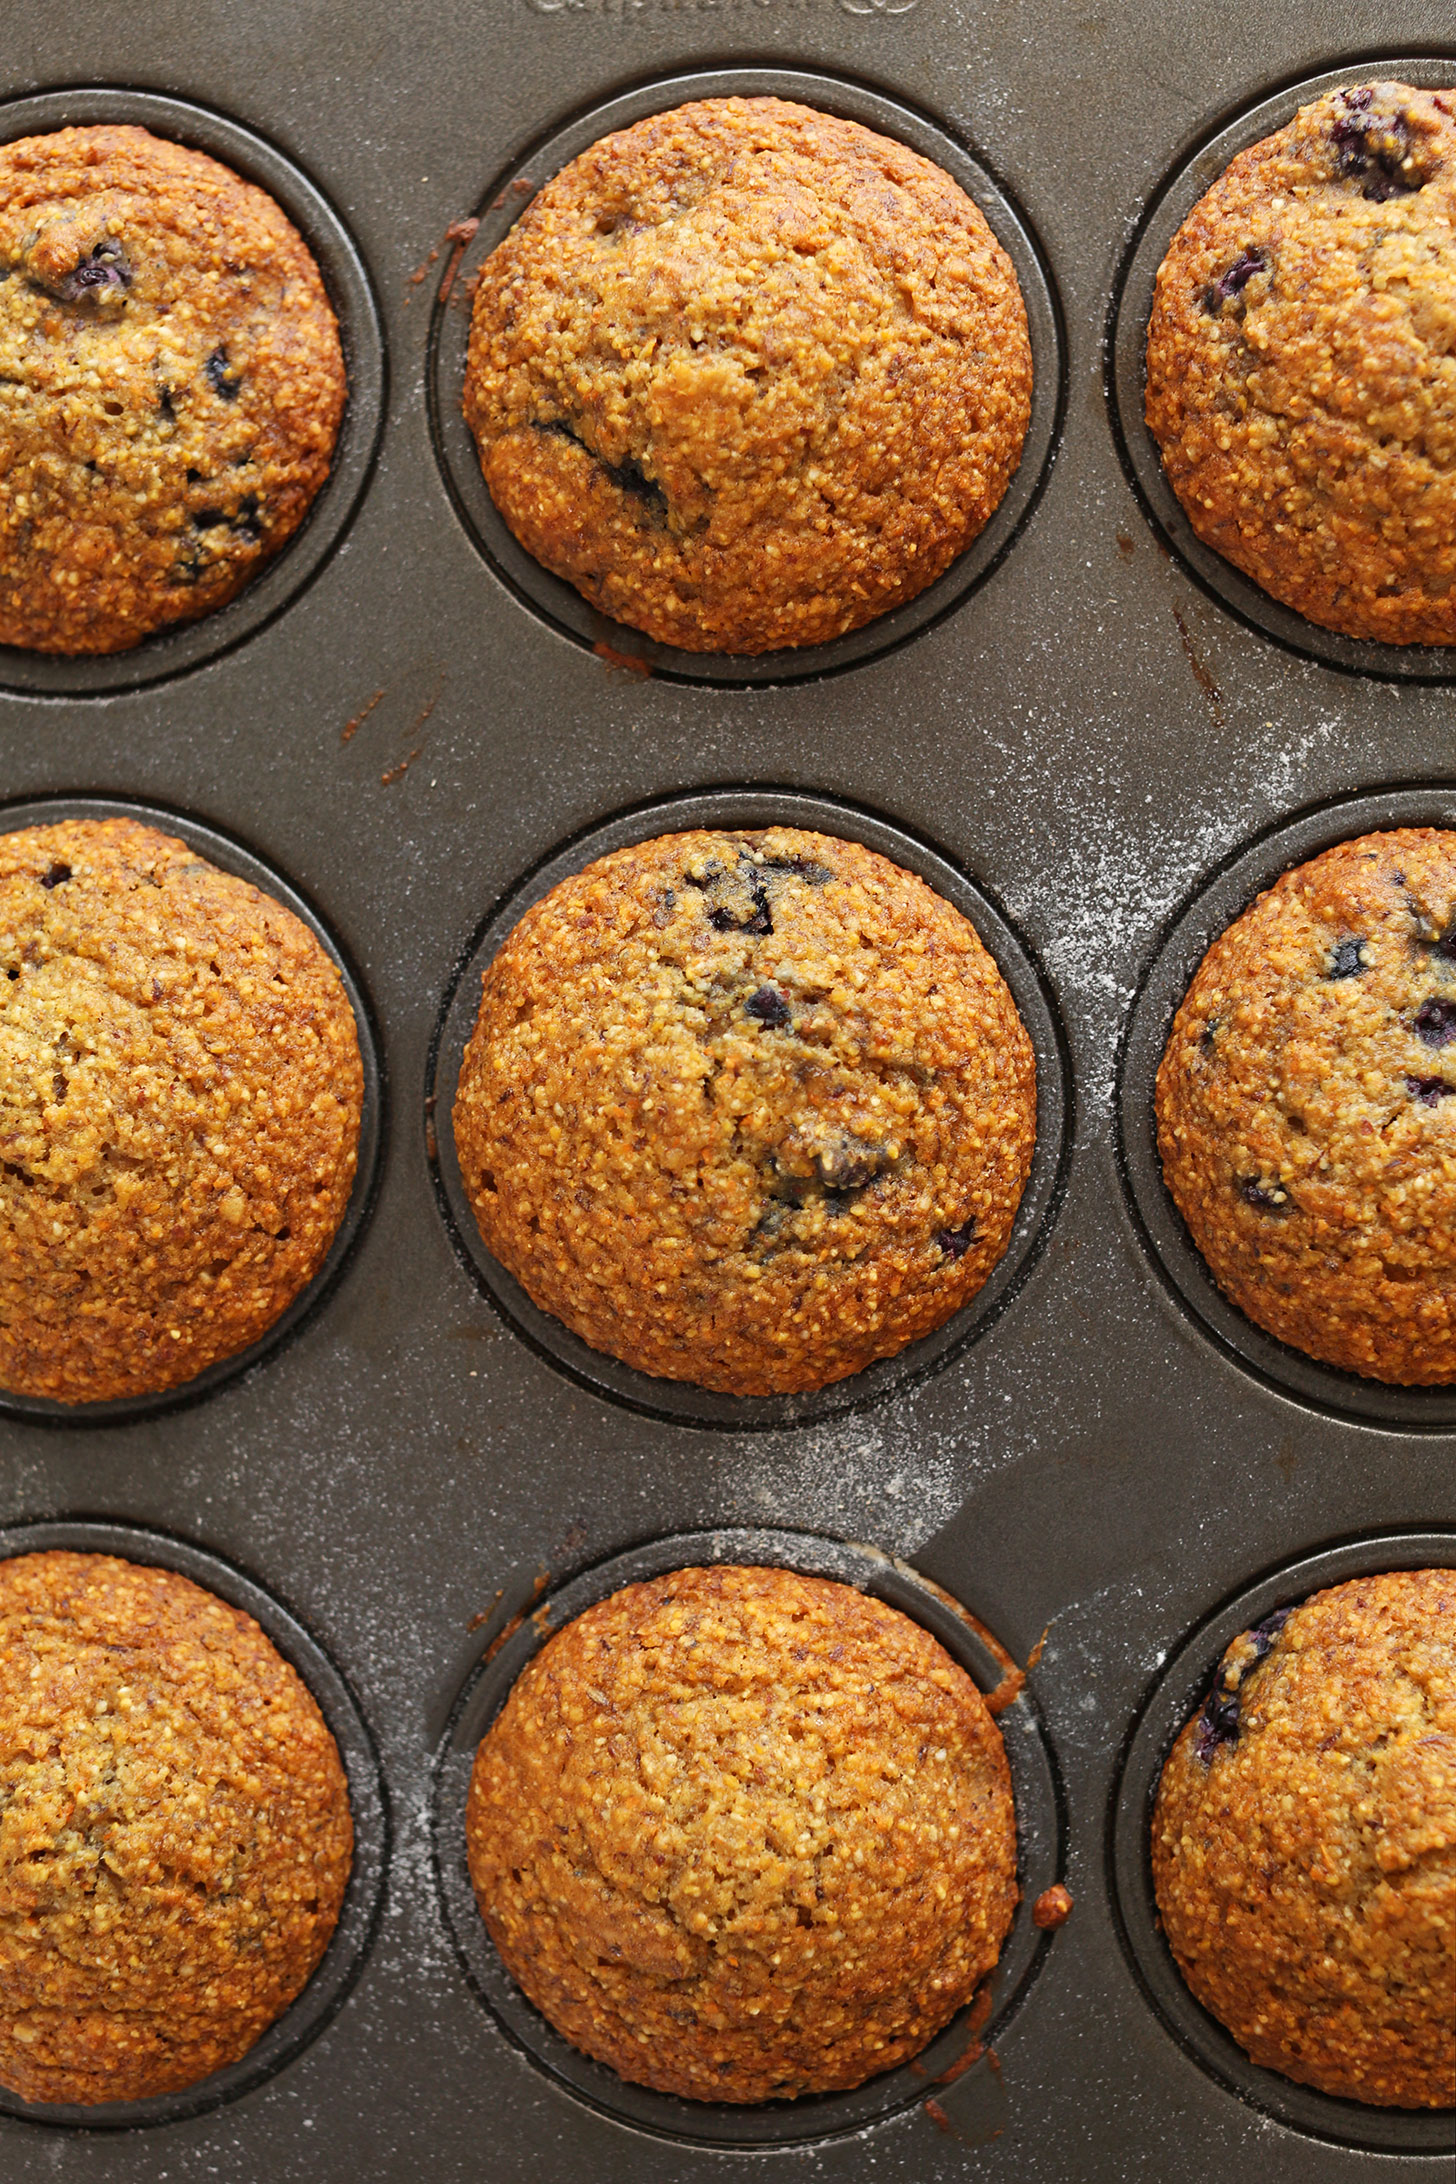 1-Bowl Blackberry Cornmeal Muffins